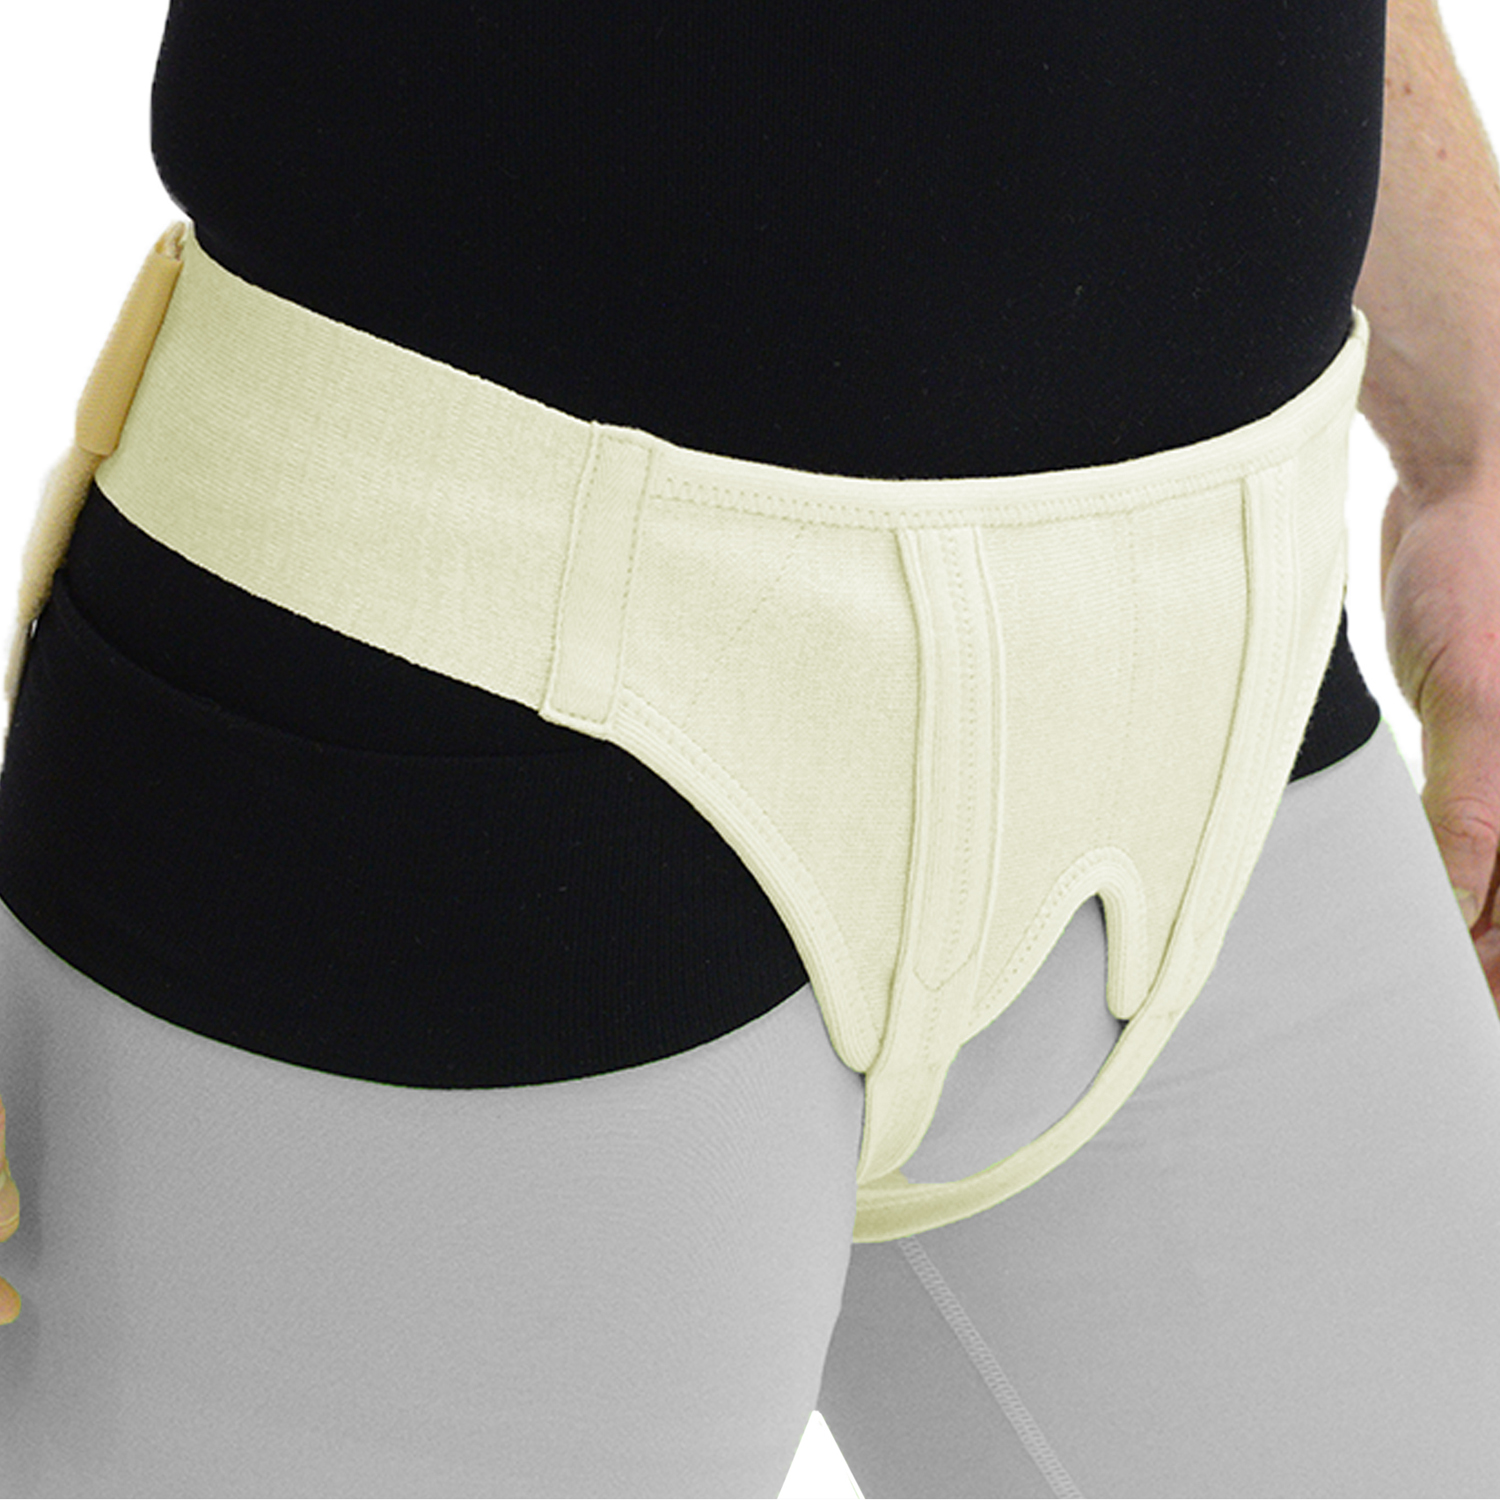 ITA-MED Style HS-484 Hernia Support